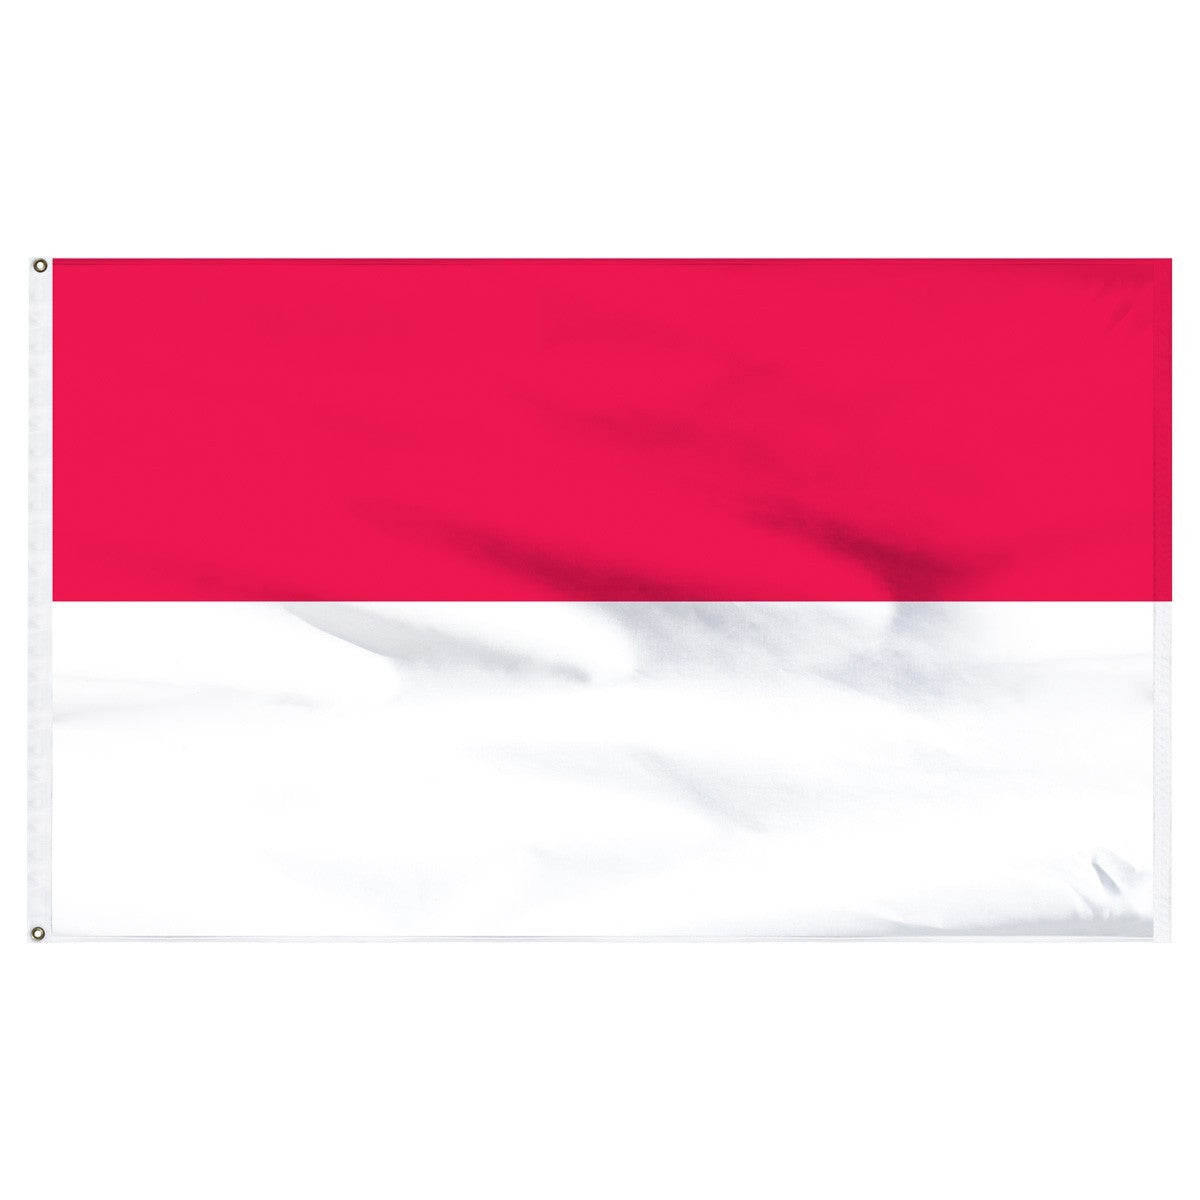 Indonesia Country Flags For Sale by 1-800 Flags